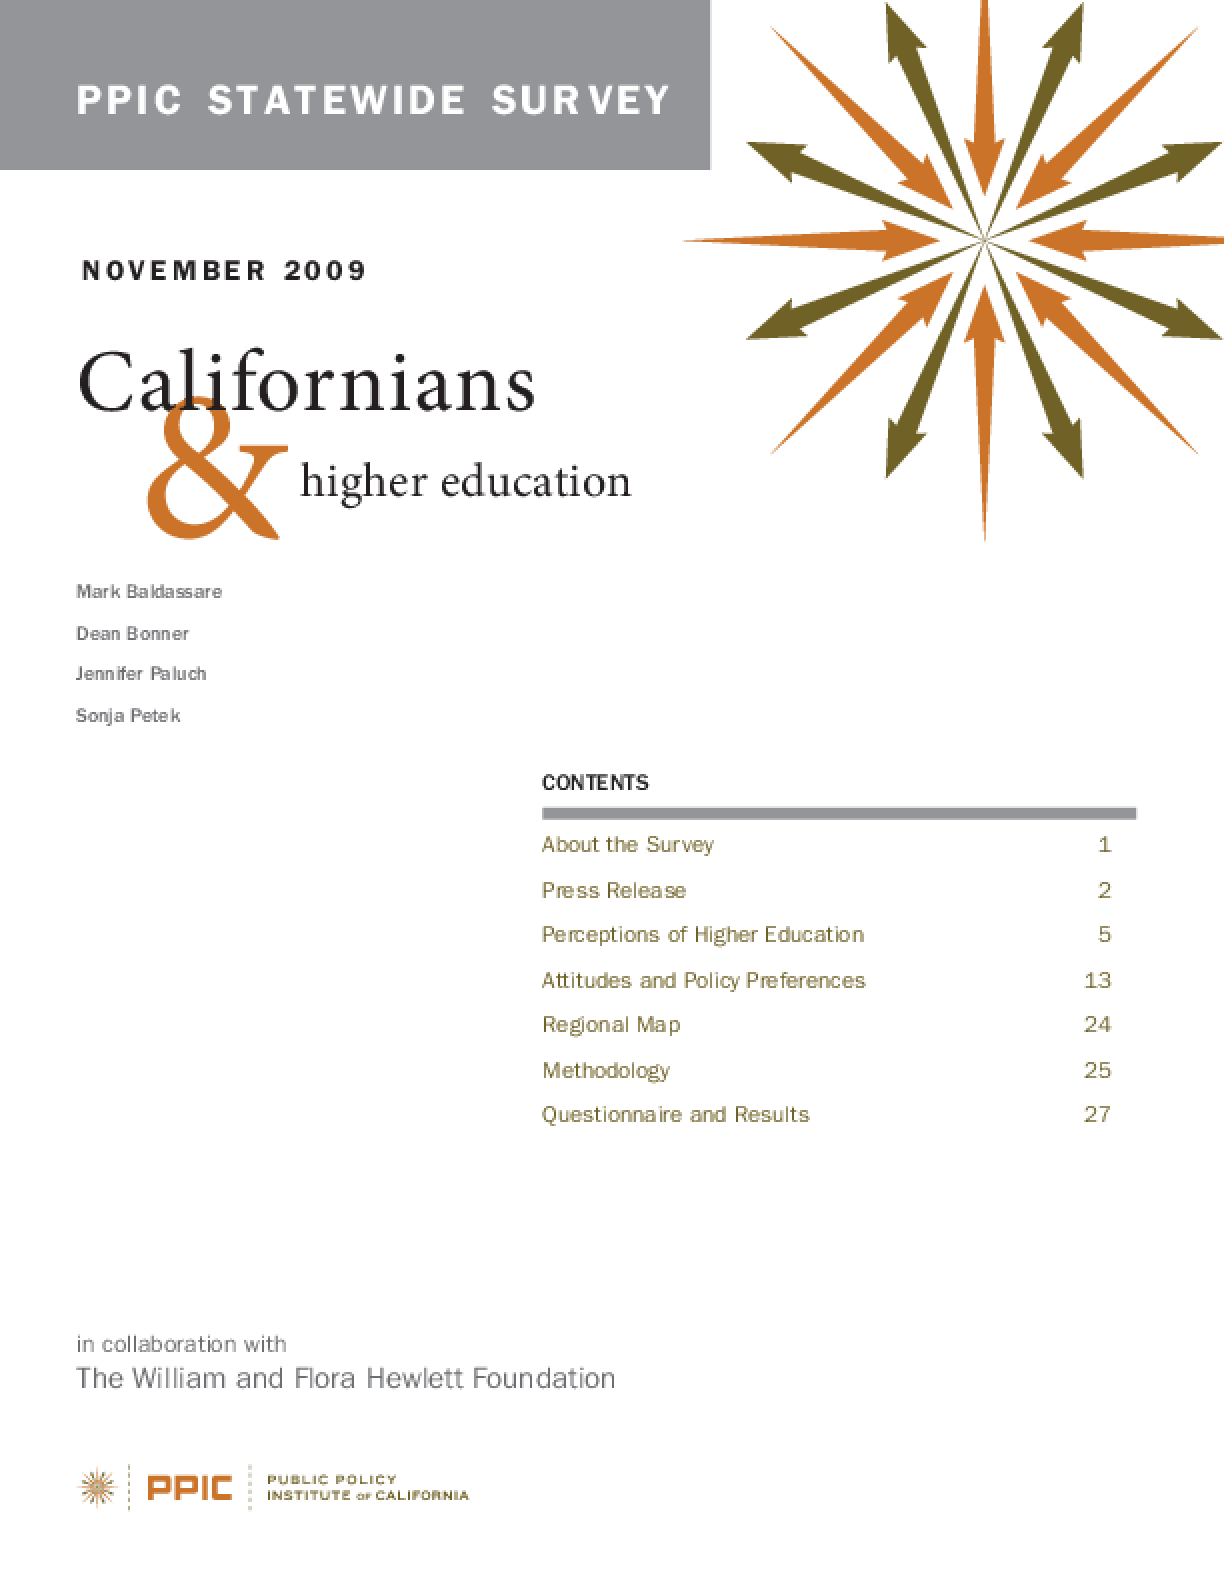 PPIC Statewide Survey: Californians and Higher Education 2009